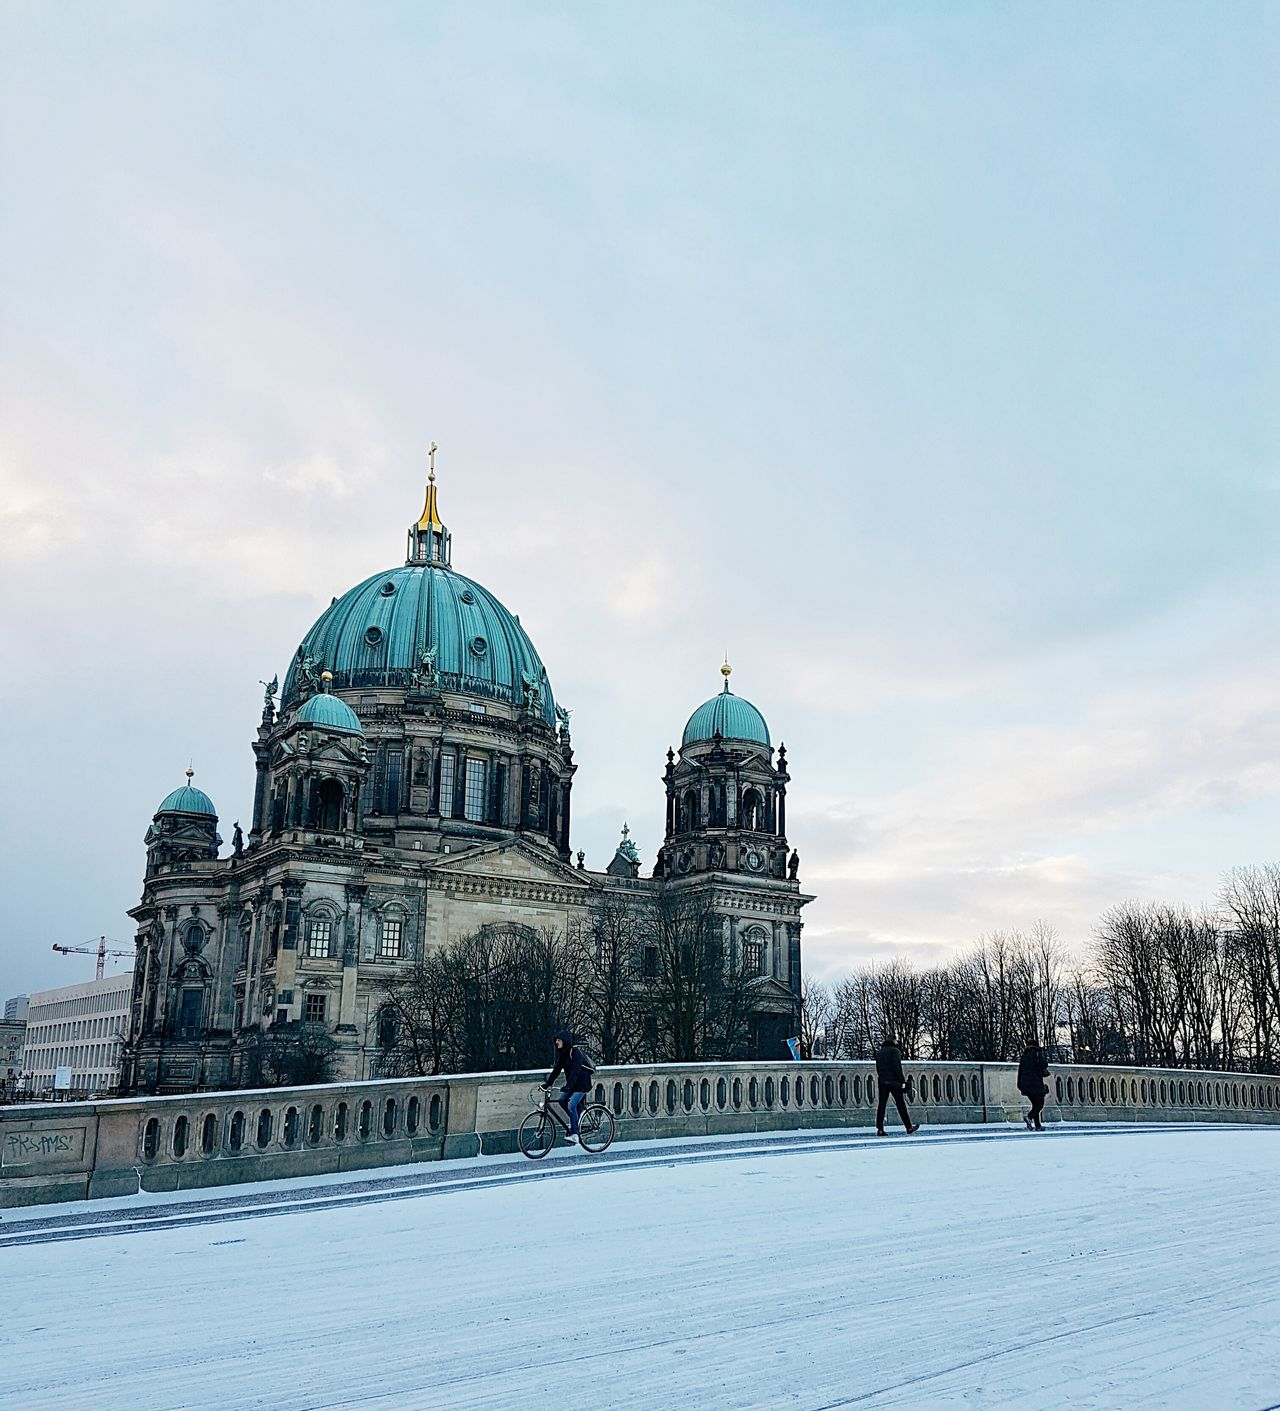 Dome Architecture Politics And Government City Travel Destinations Snow Winter Place Of Worship No People Cityscape Cloud - Sky Building Exterior Outdoors Cold Temperature Day Sky Snowing Berlin Winter Eye4photography  EyeEm Best Shots EyeEm Deutschland